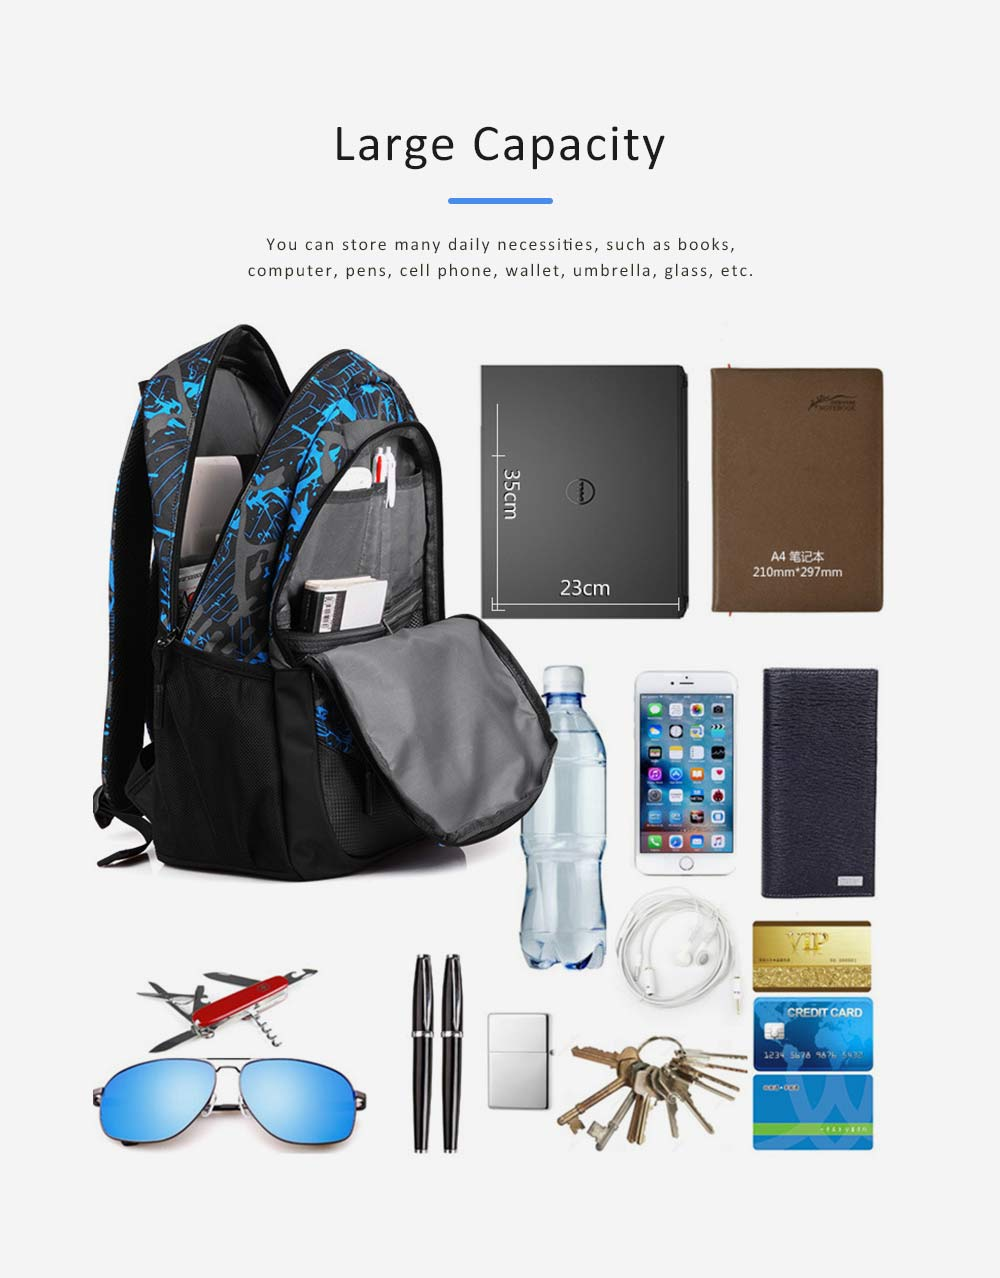 USB Charge Port Backpack for Notebook, Laptop, Waterproof Oxford School Bag for Students, Traveling 4